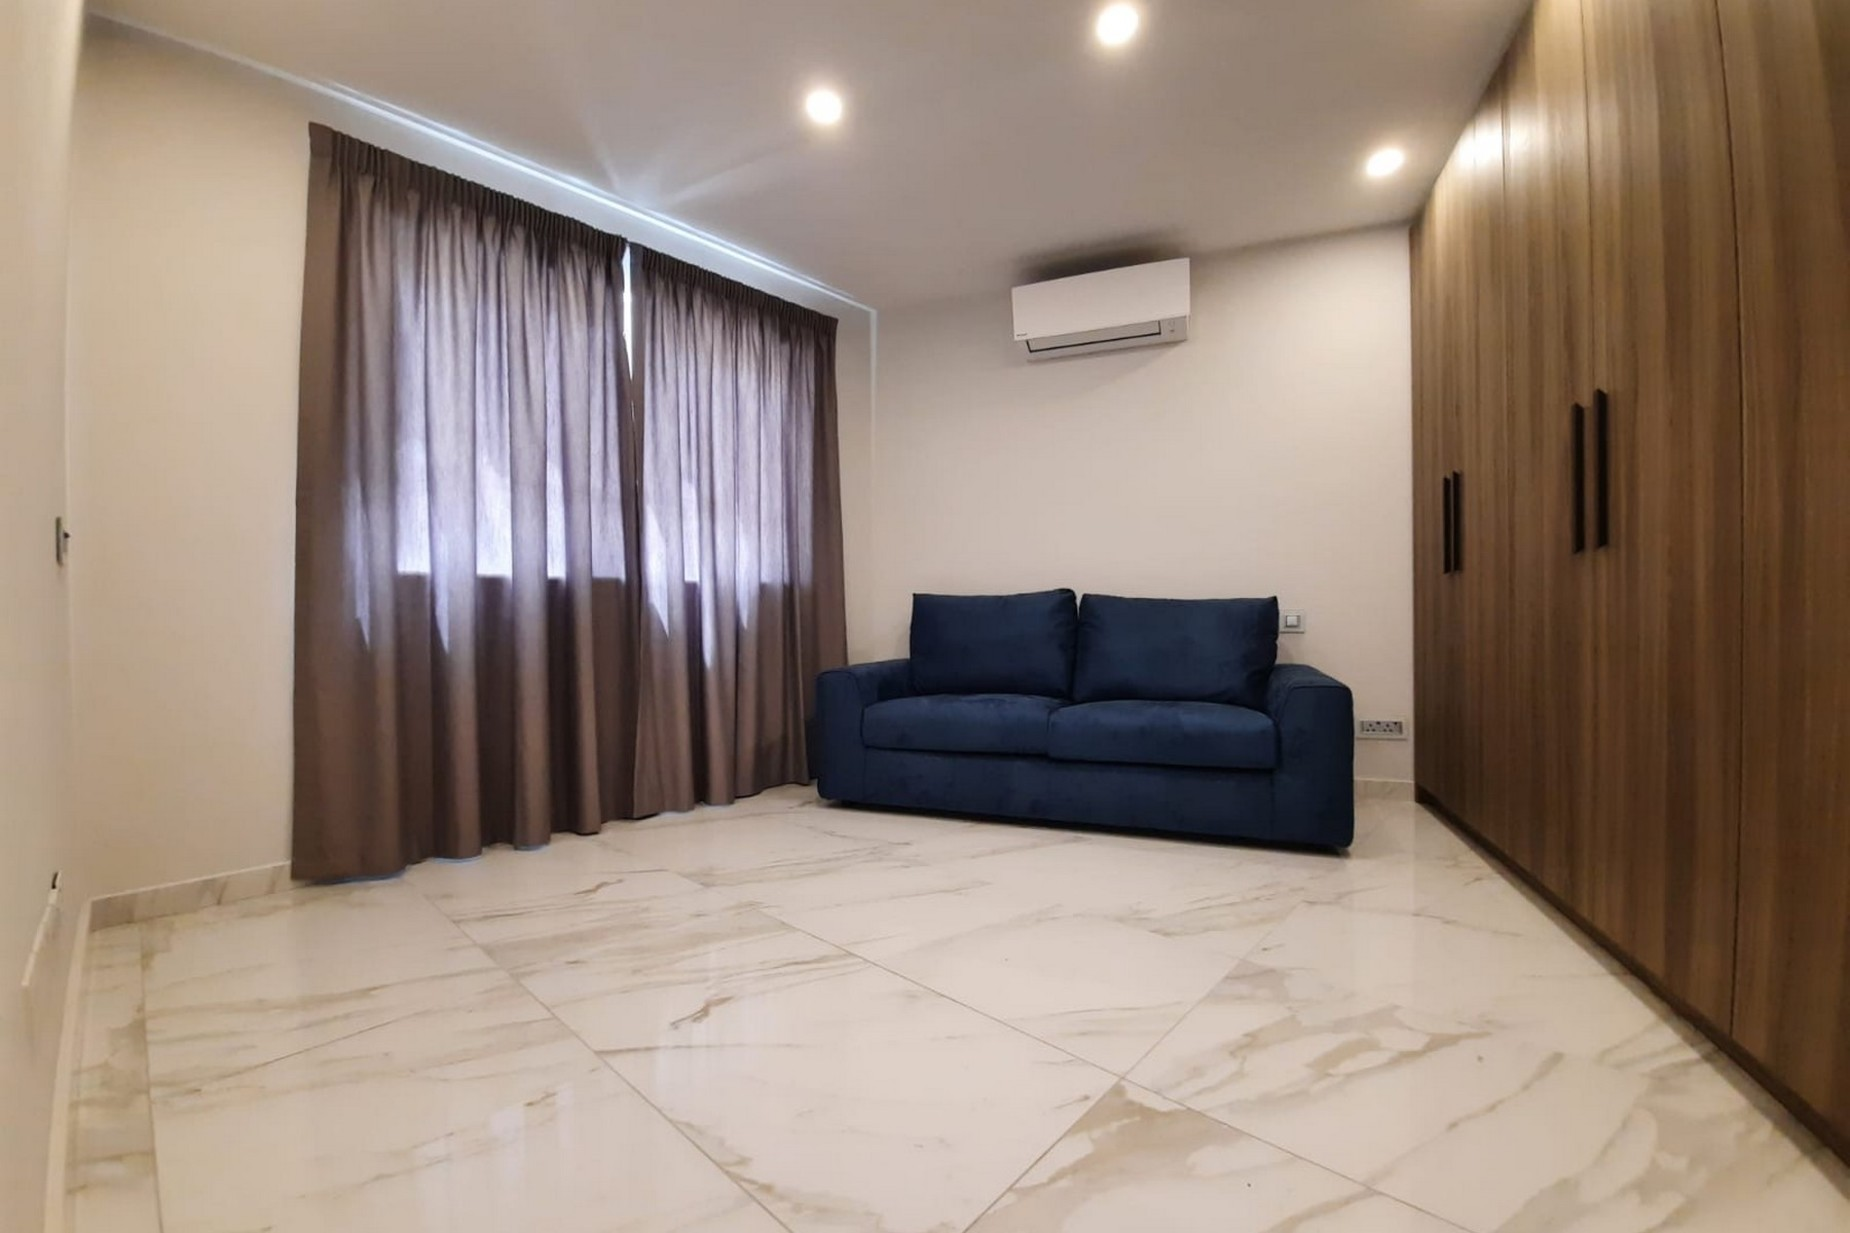 3 bed Penthouse For Rent in Rabat, Rabat - thumb 10